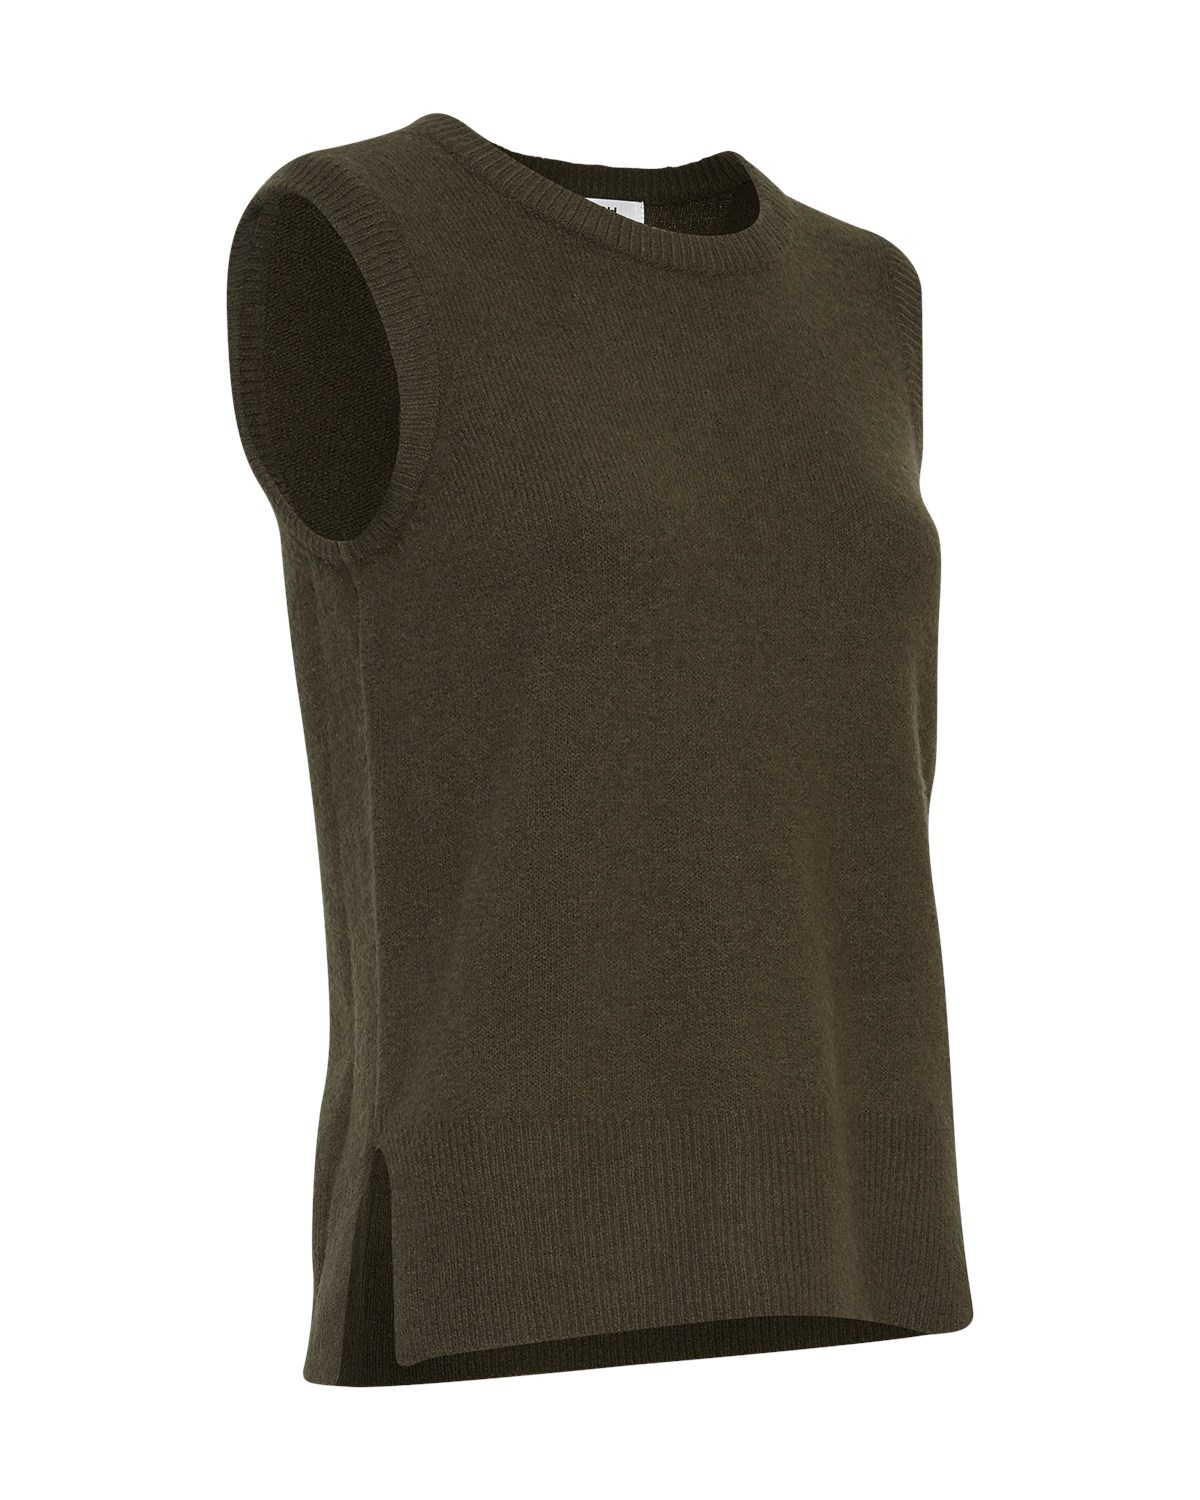 gallery-1879-for-15625-army green